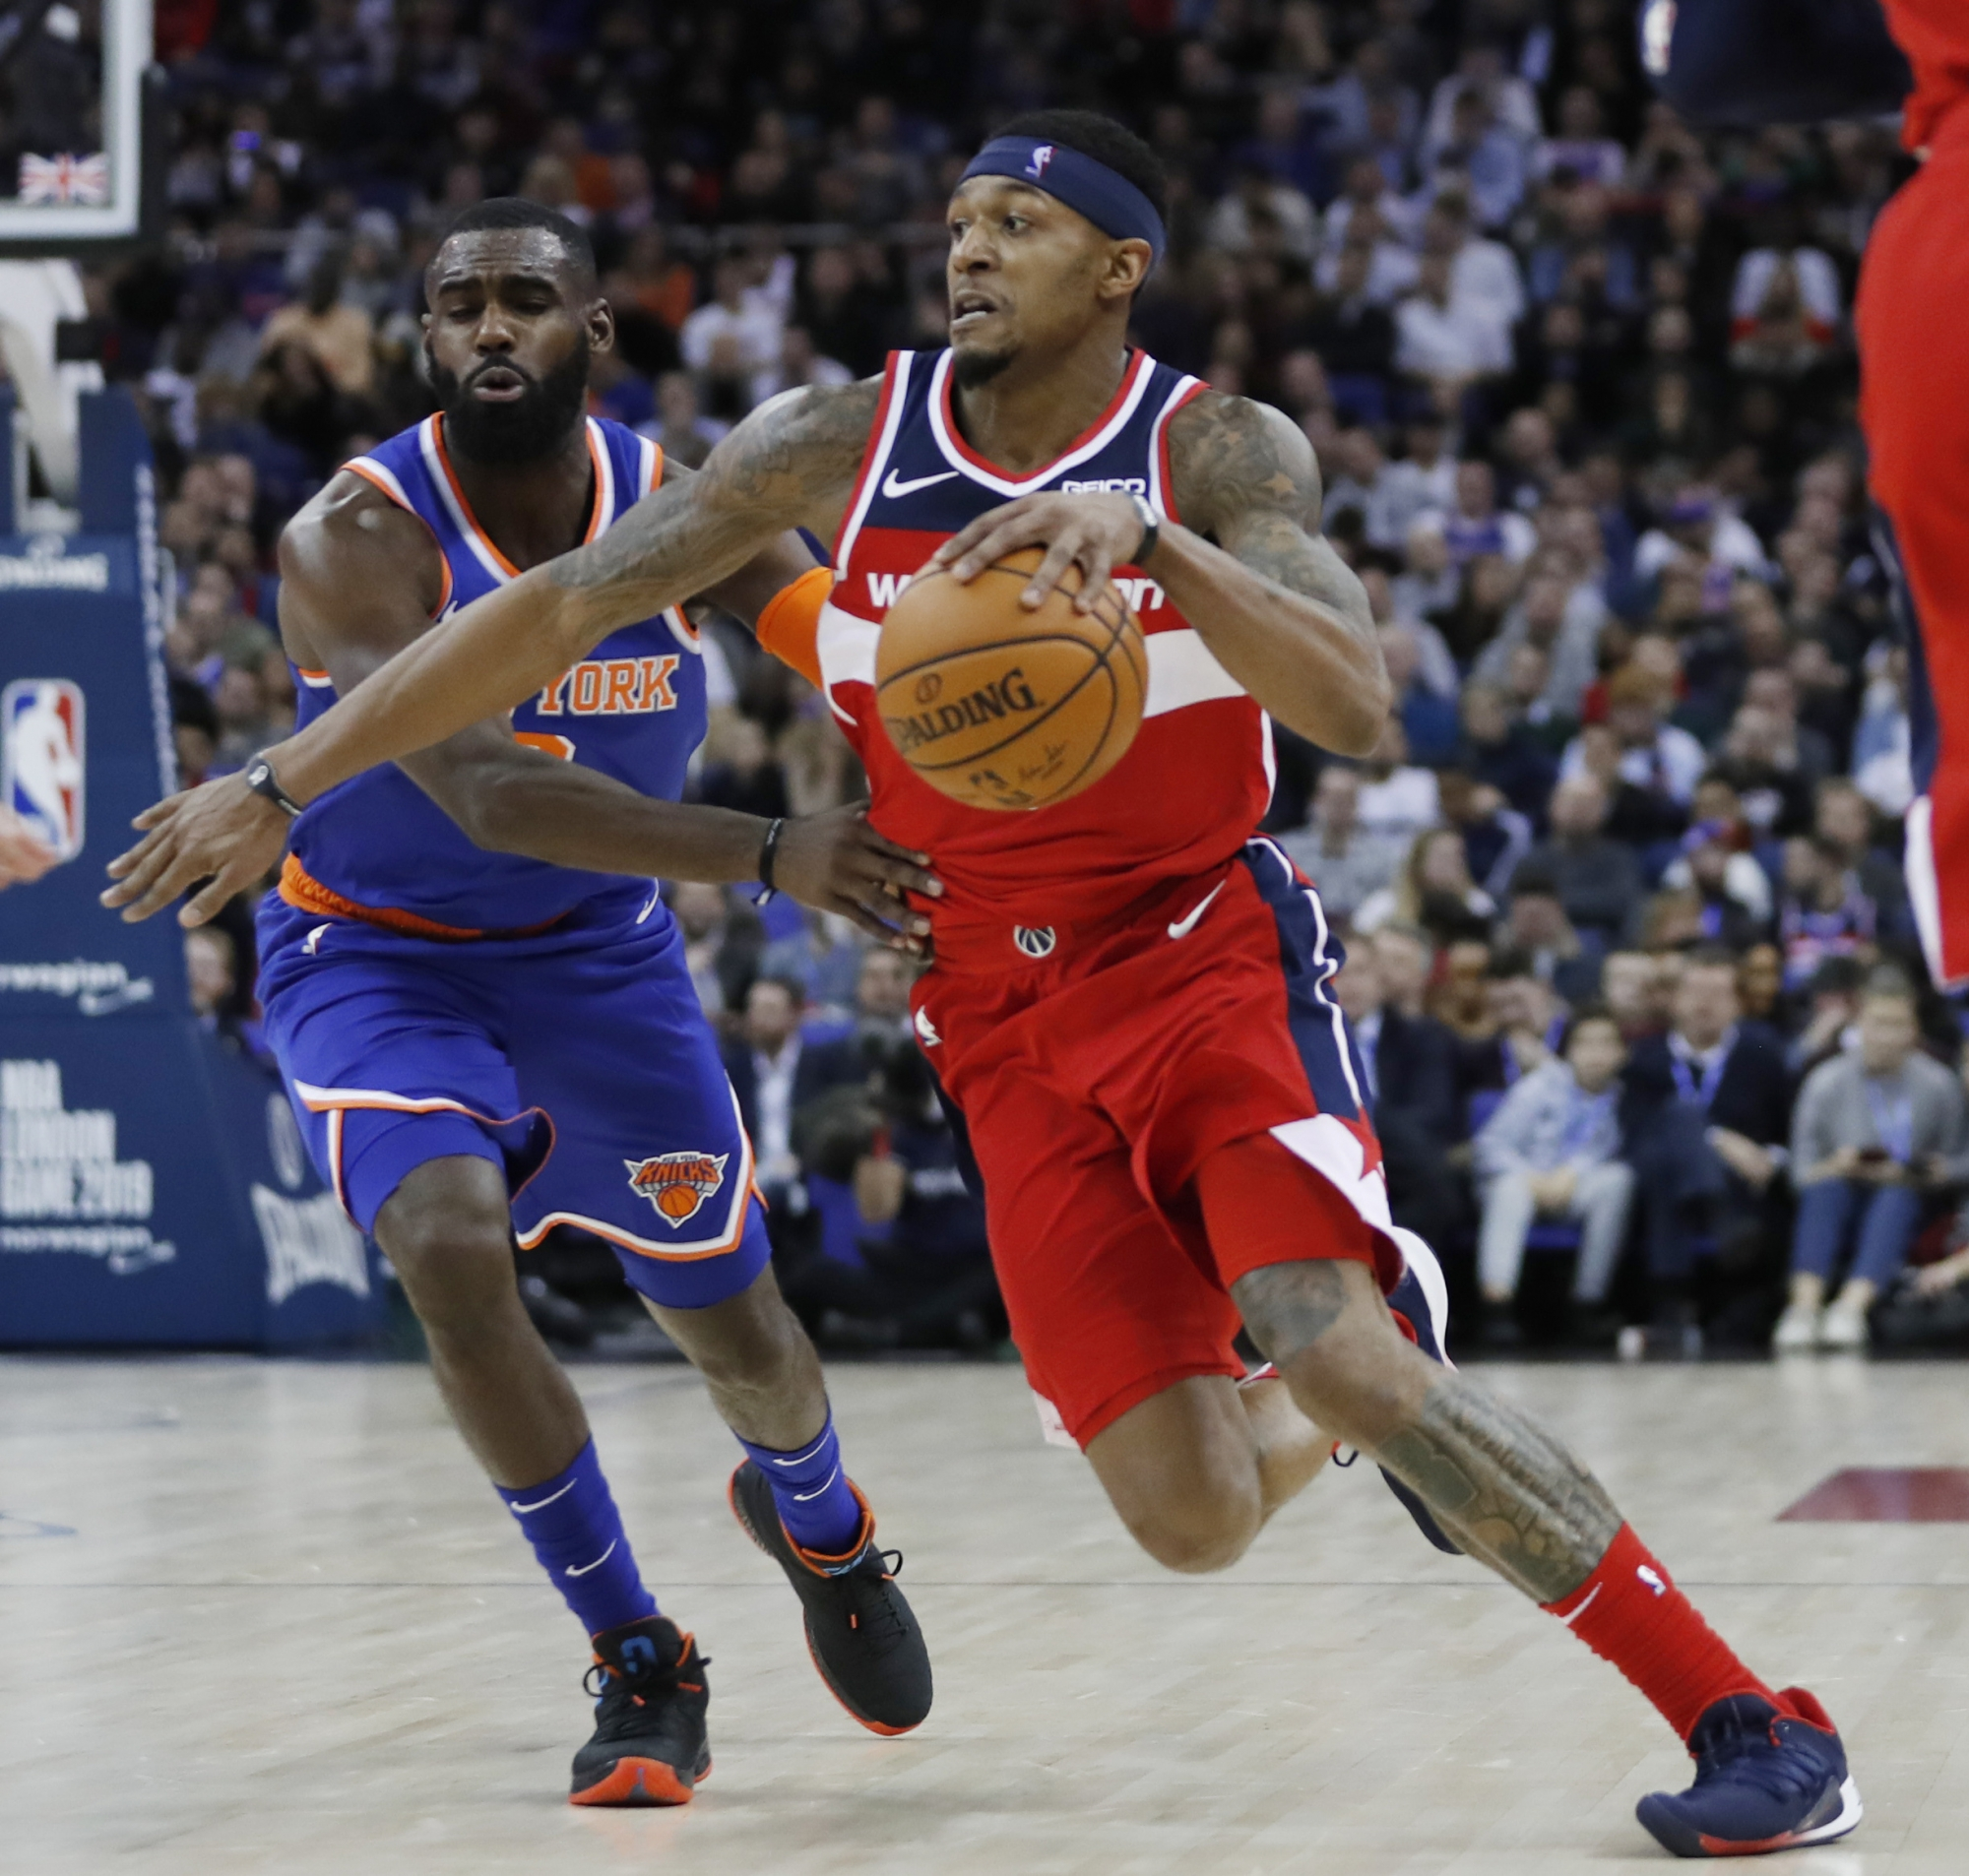 Wizards come from behind to take down Knicks in London